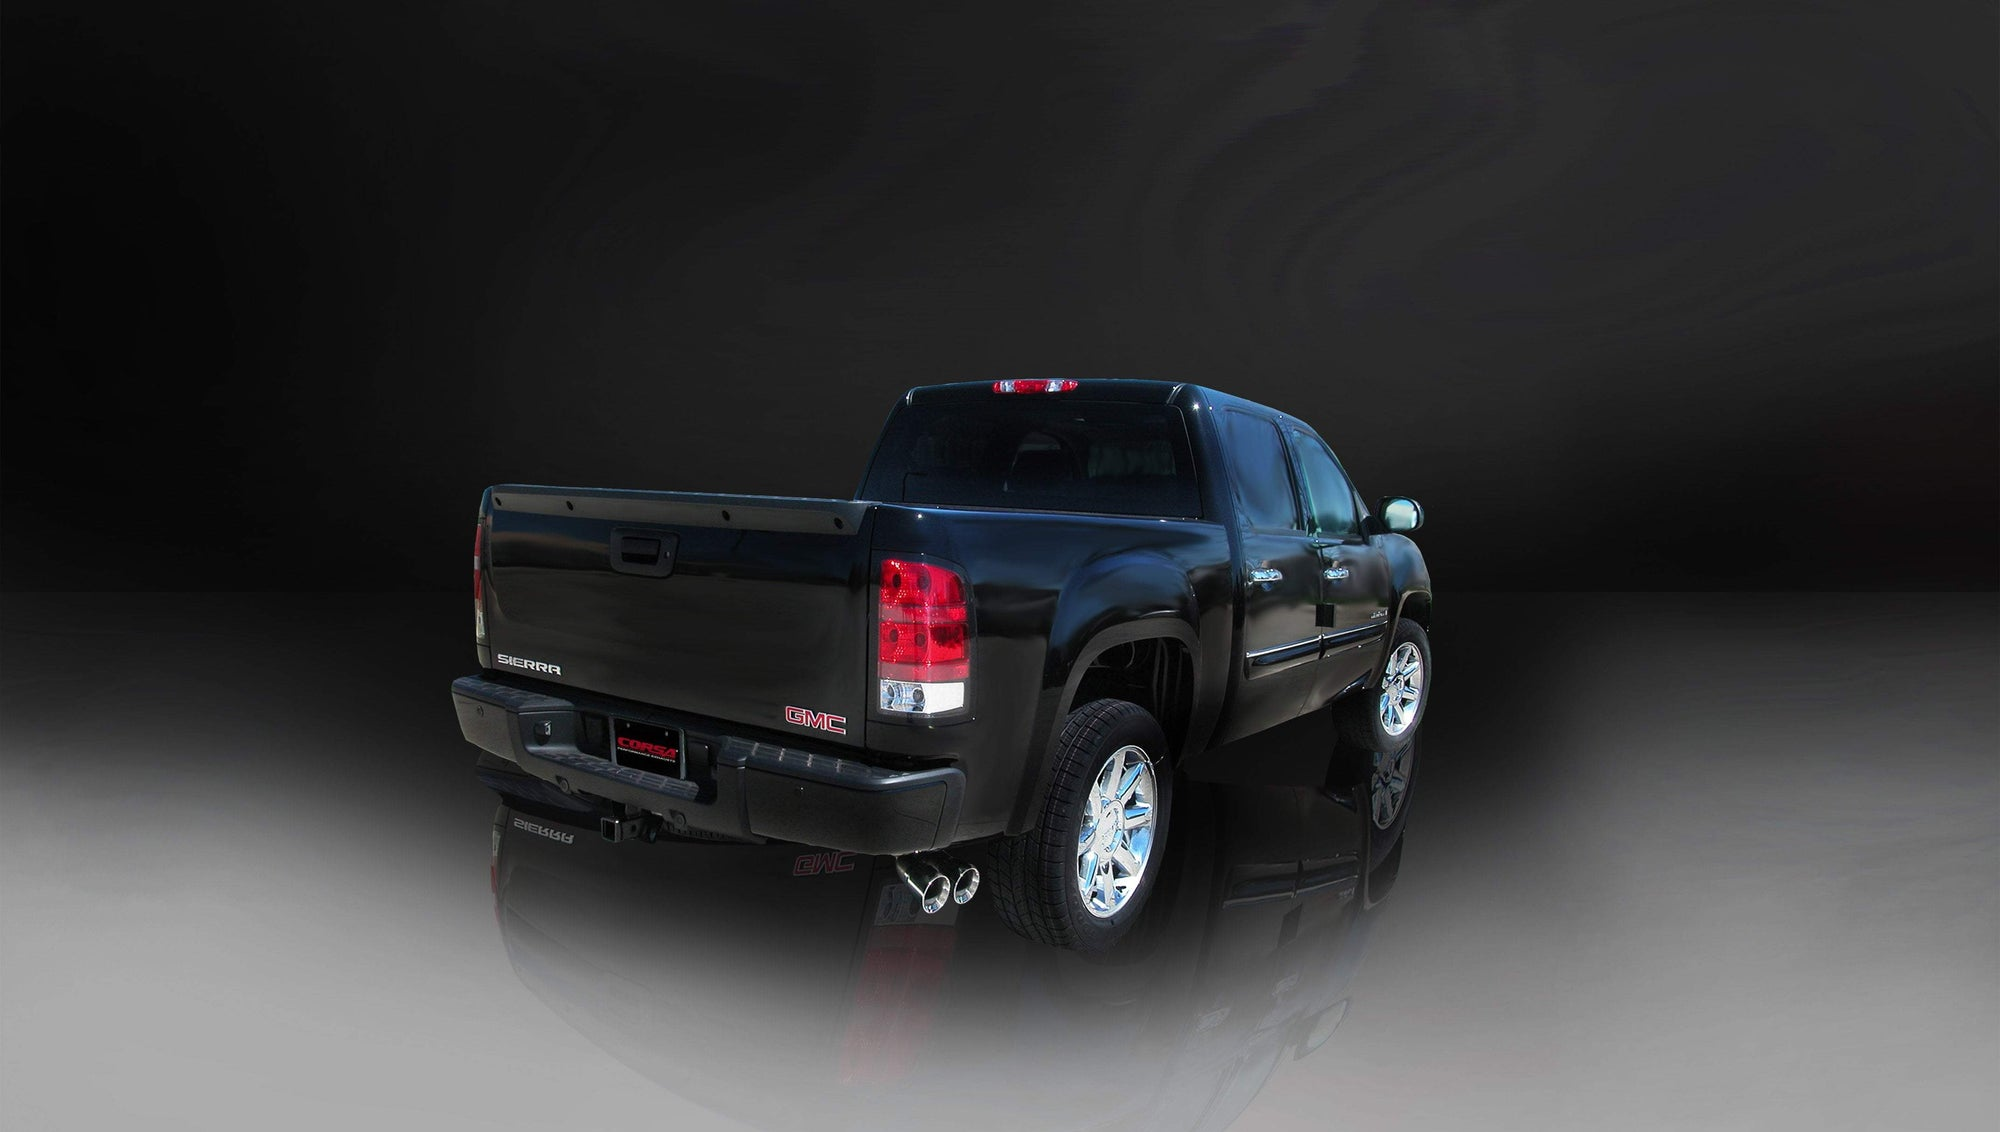 "CORSA PERFORMANCE Cat-Back Exhaust Polished / Sport / Single Side - Twin 4.0in 2007-2008 Chevrolet Silverado, GMC Sierra 4.8L, 5.3L, 6.0L V8, 3.0"" Single Side Exit Catback Exhaust System with Twin 4"" Tips (14259) Sport Sound Level"